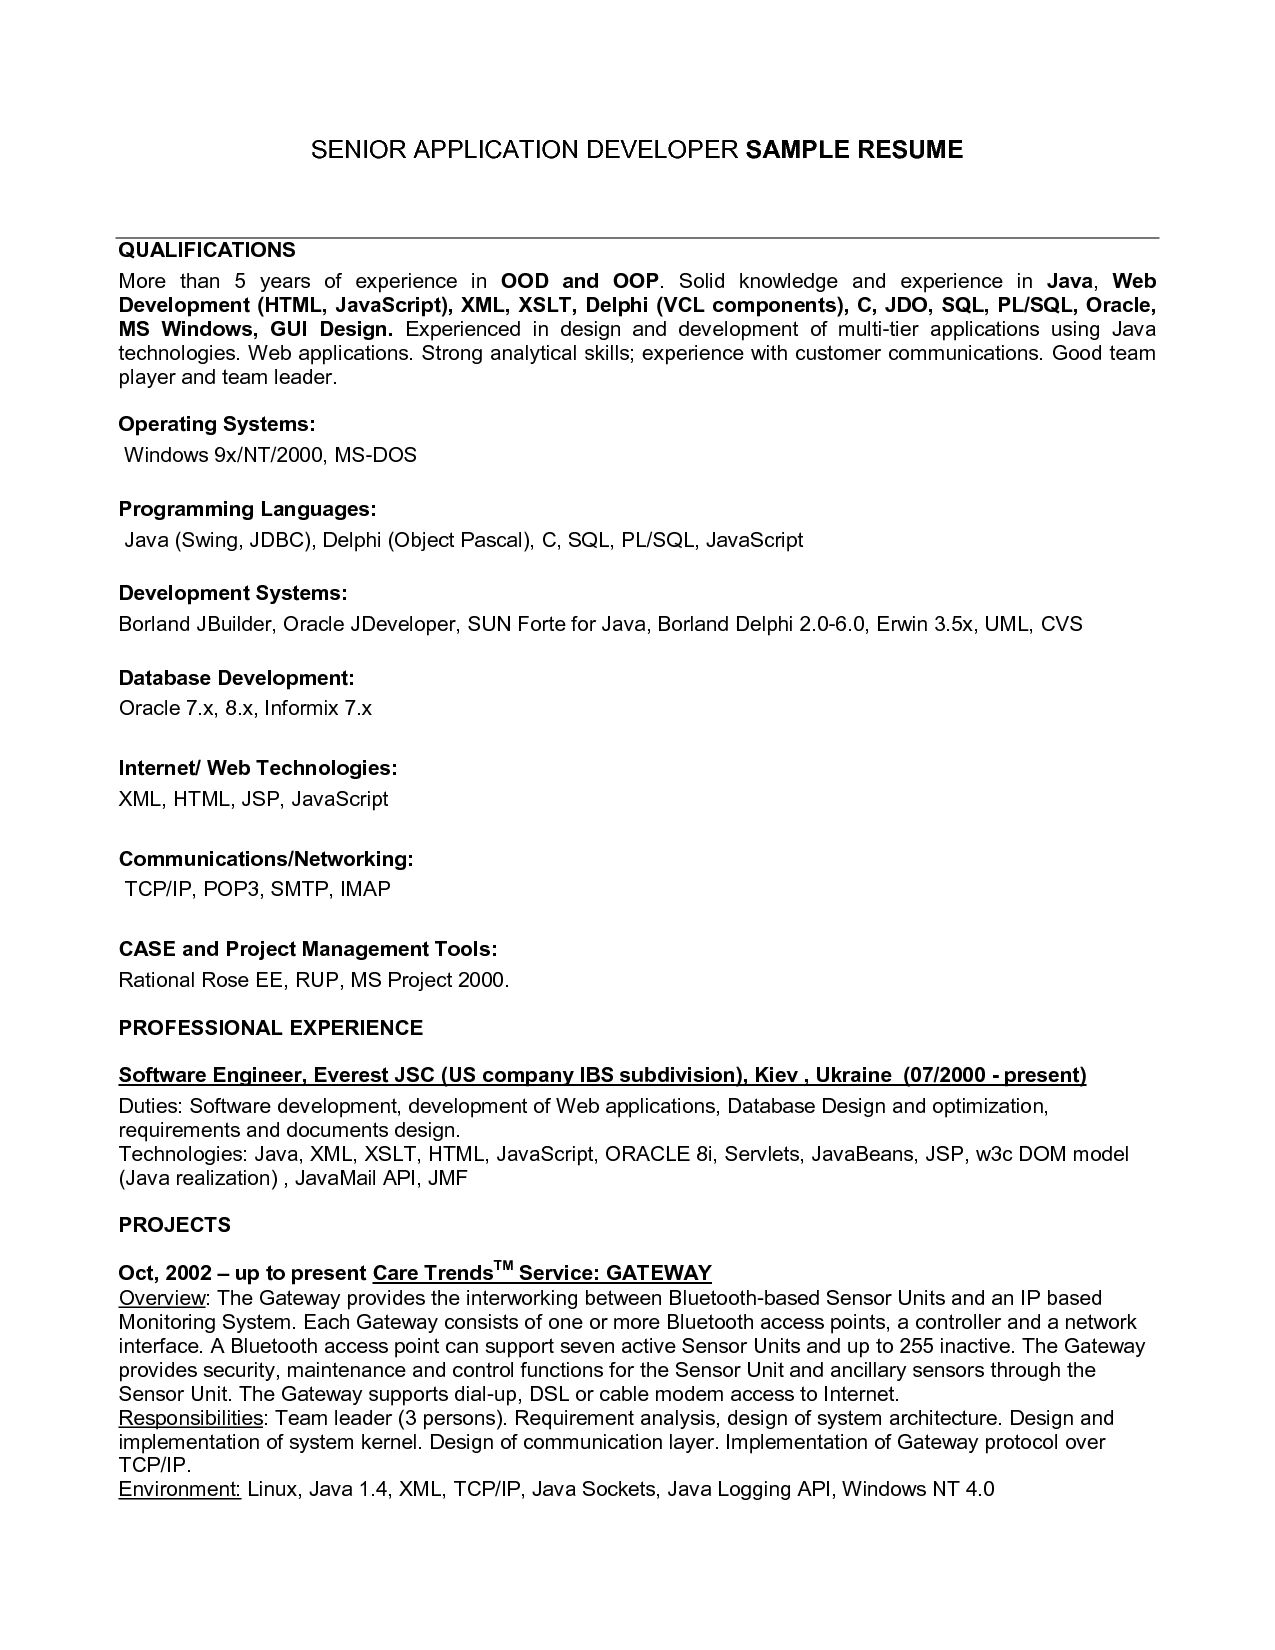 Sample Resume Language Skills Qualifications For A Resume Examples 7f8ea3a2a The Most